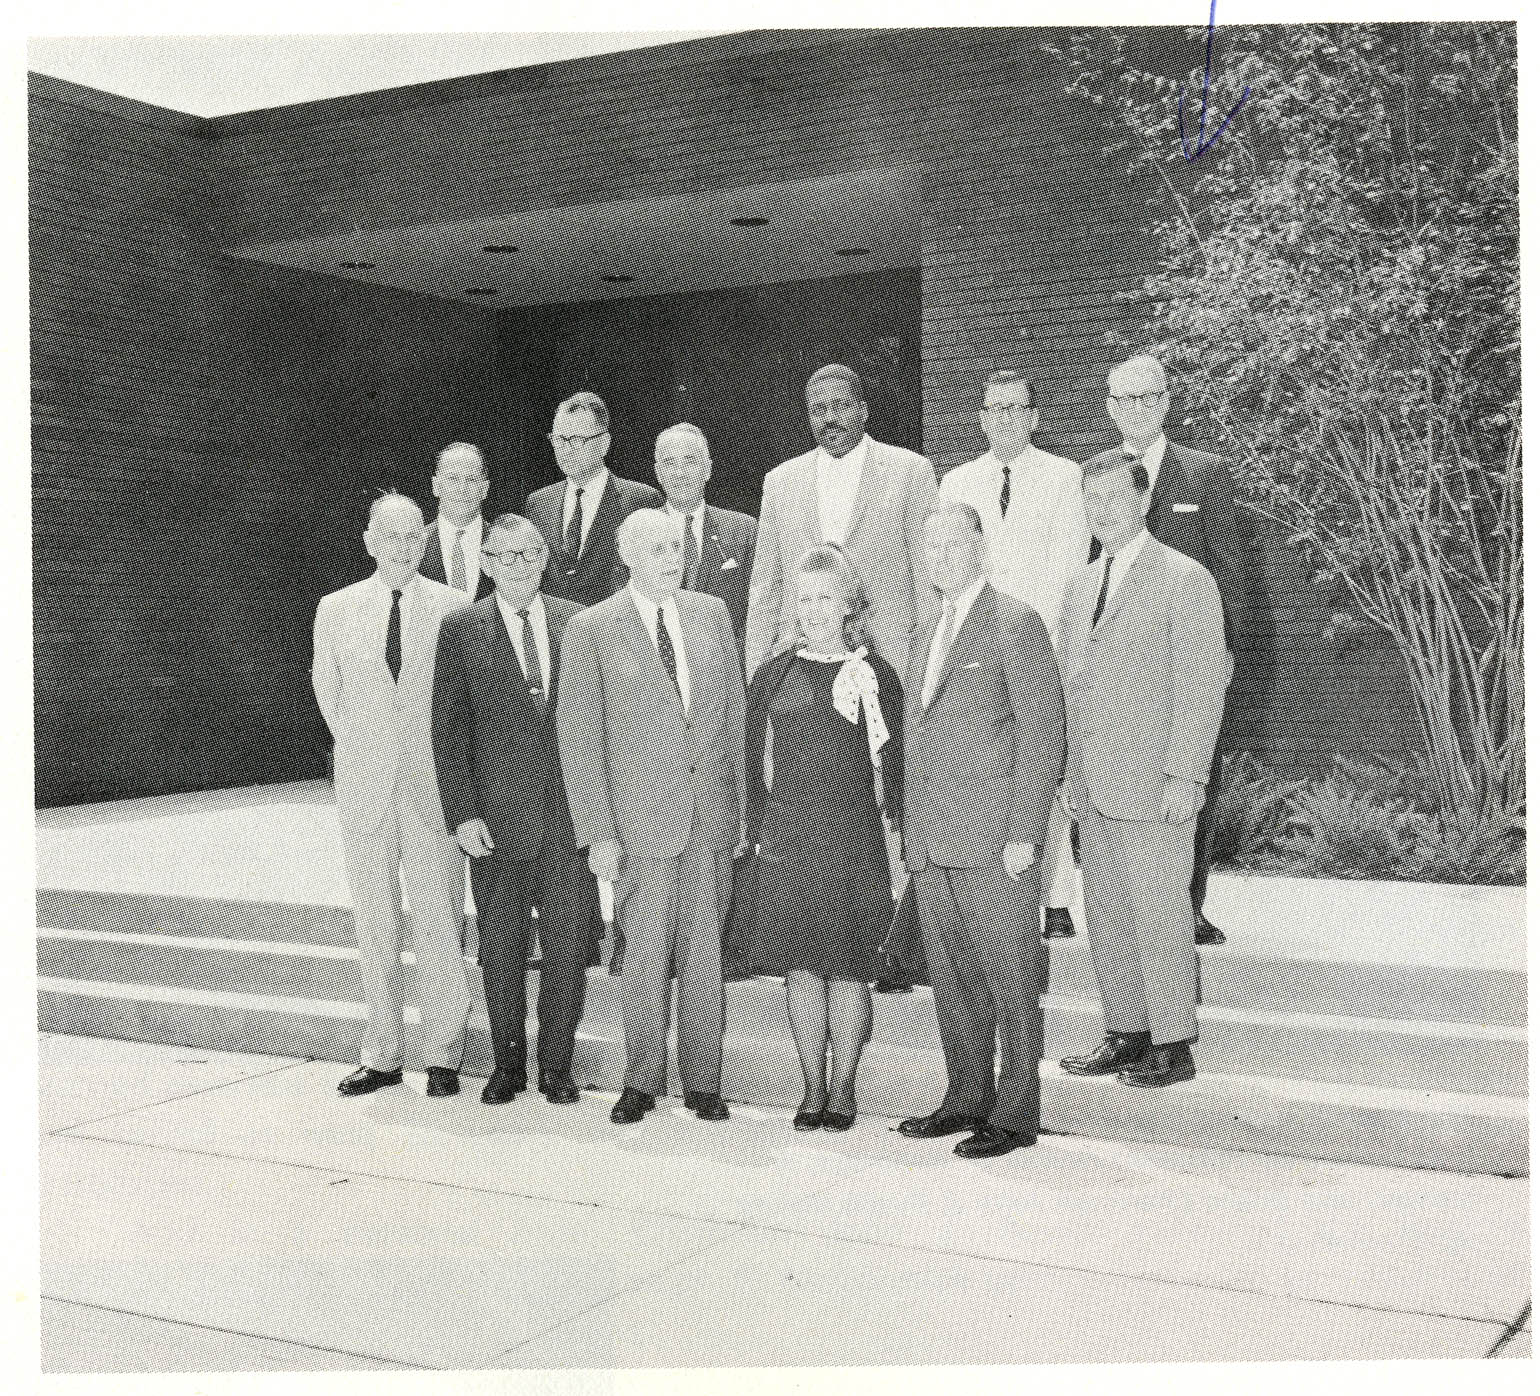 UConn Board of Trustees including Merlin Bishop (first from the right, top row) and UConn President Homer D. Babbidge (first from the right, middle row), 1968